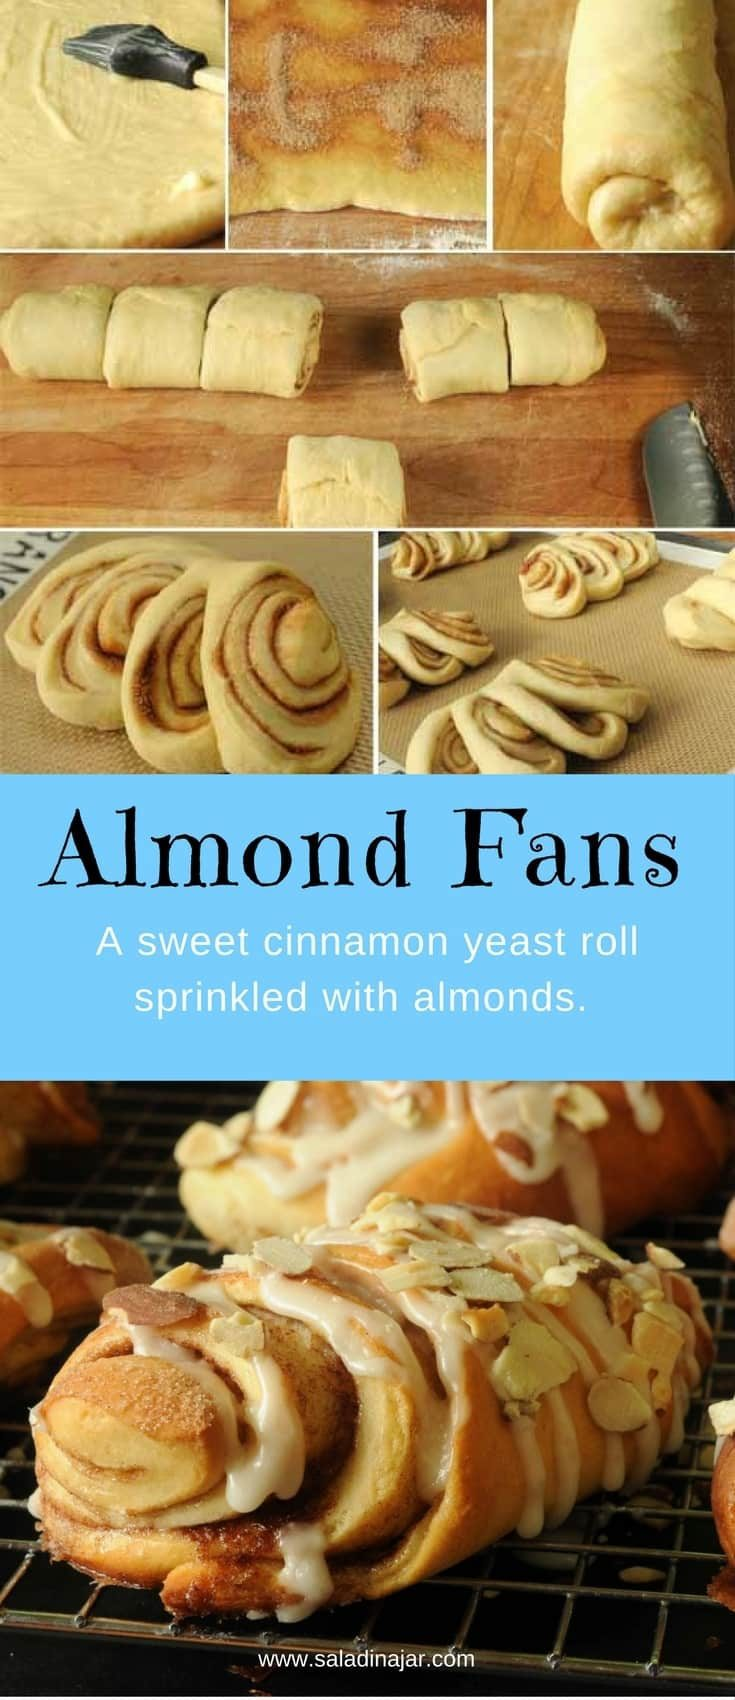 A fancy cinnamon roll that's so easy to make and bake. Includes instructions for bread machine and mixing by hand.